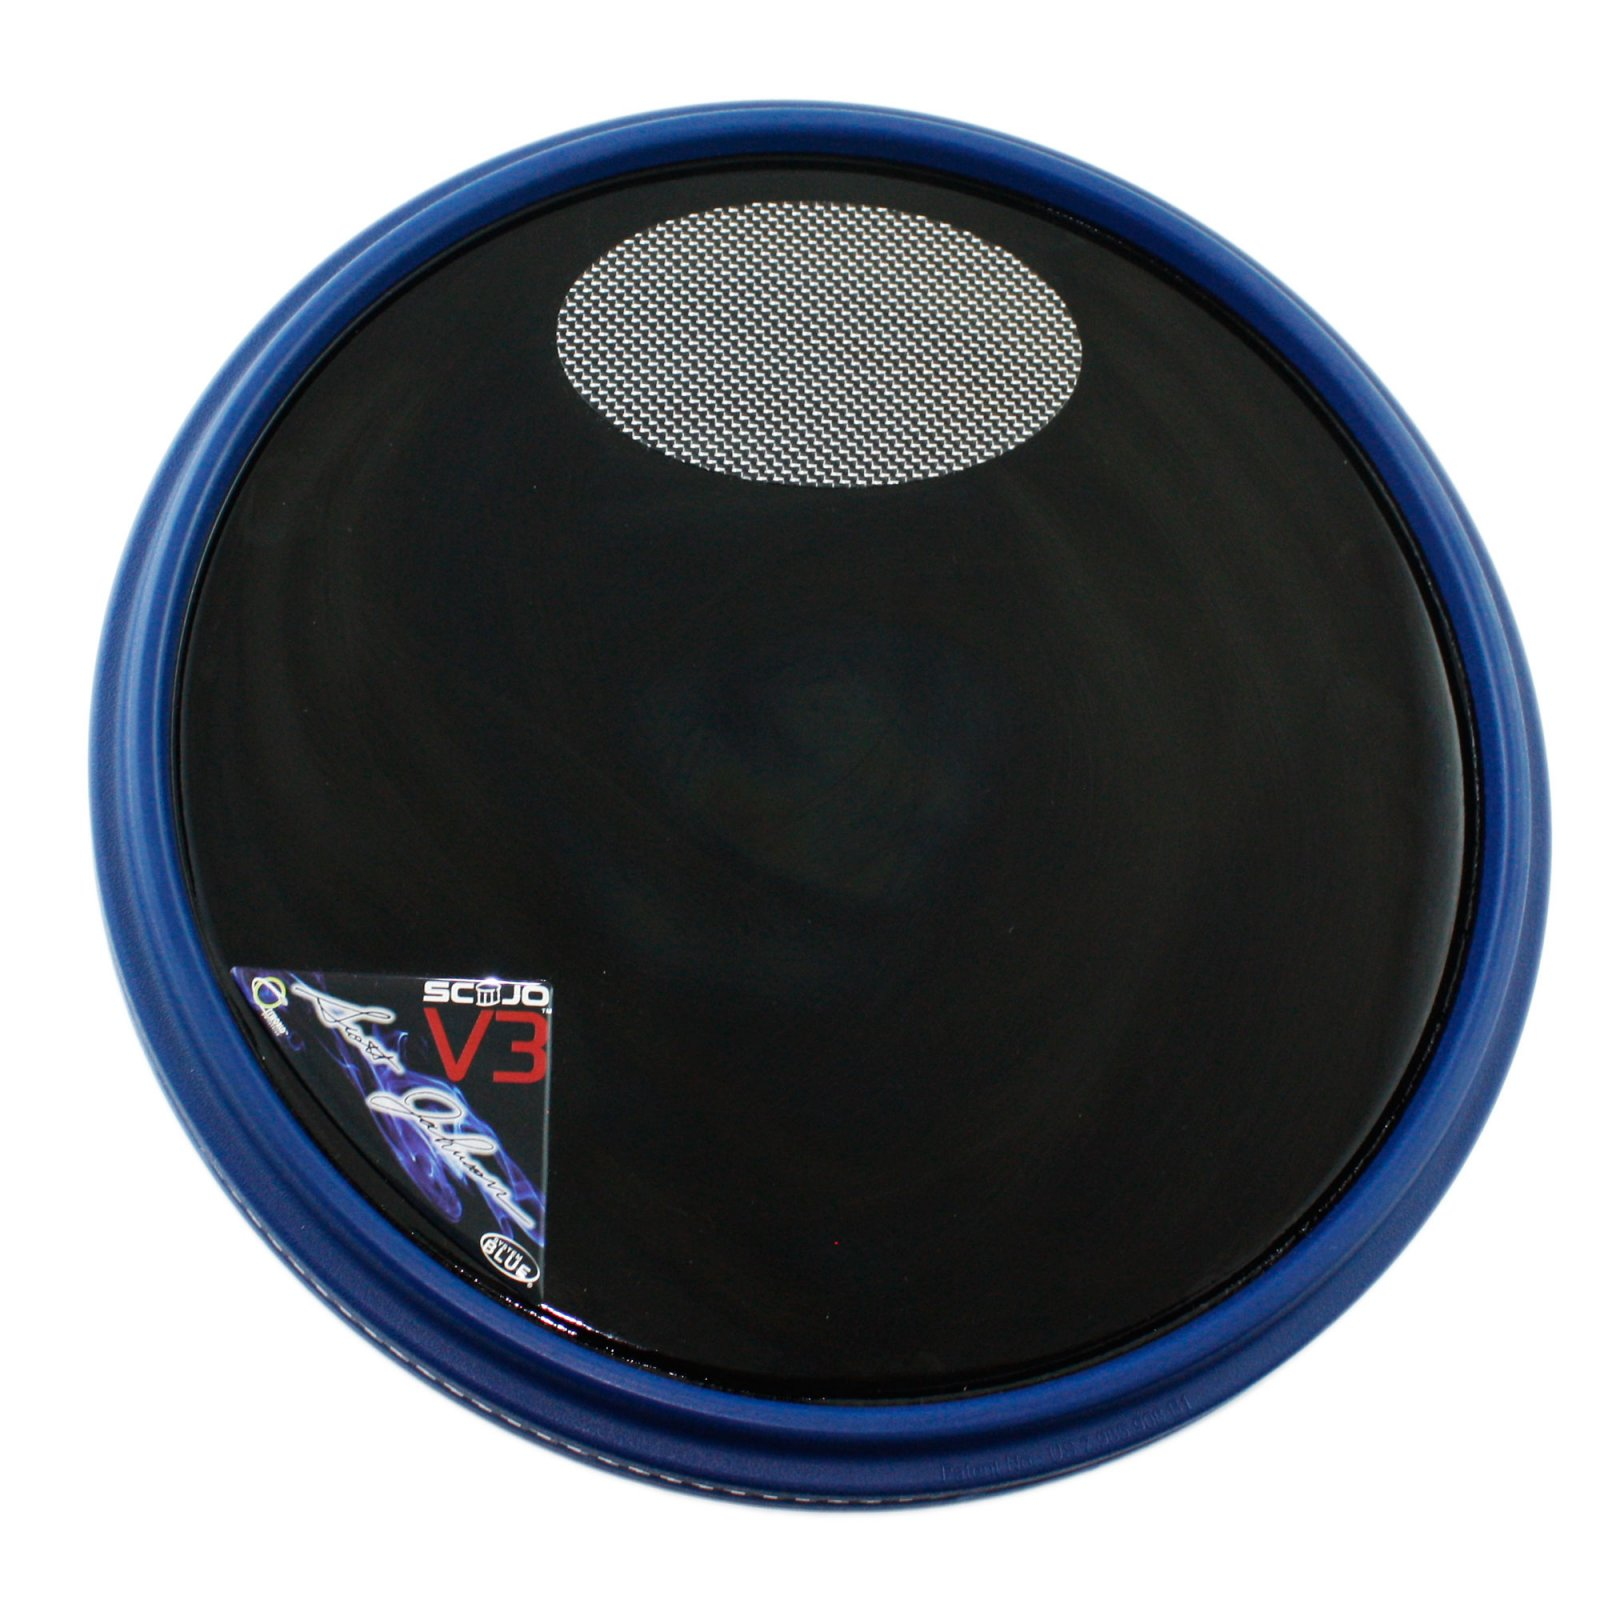 Offworld Percussion Scott Johnson Original Invader 3 Practice Pad